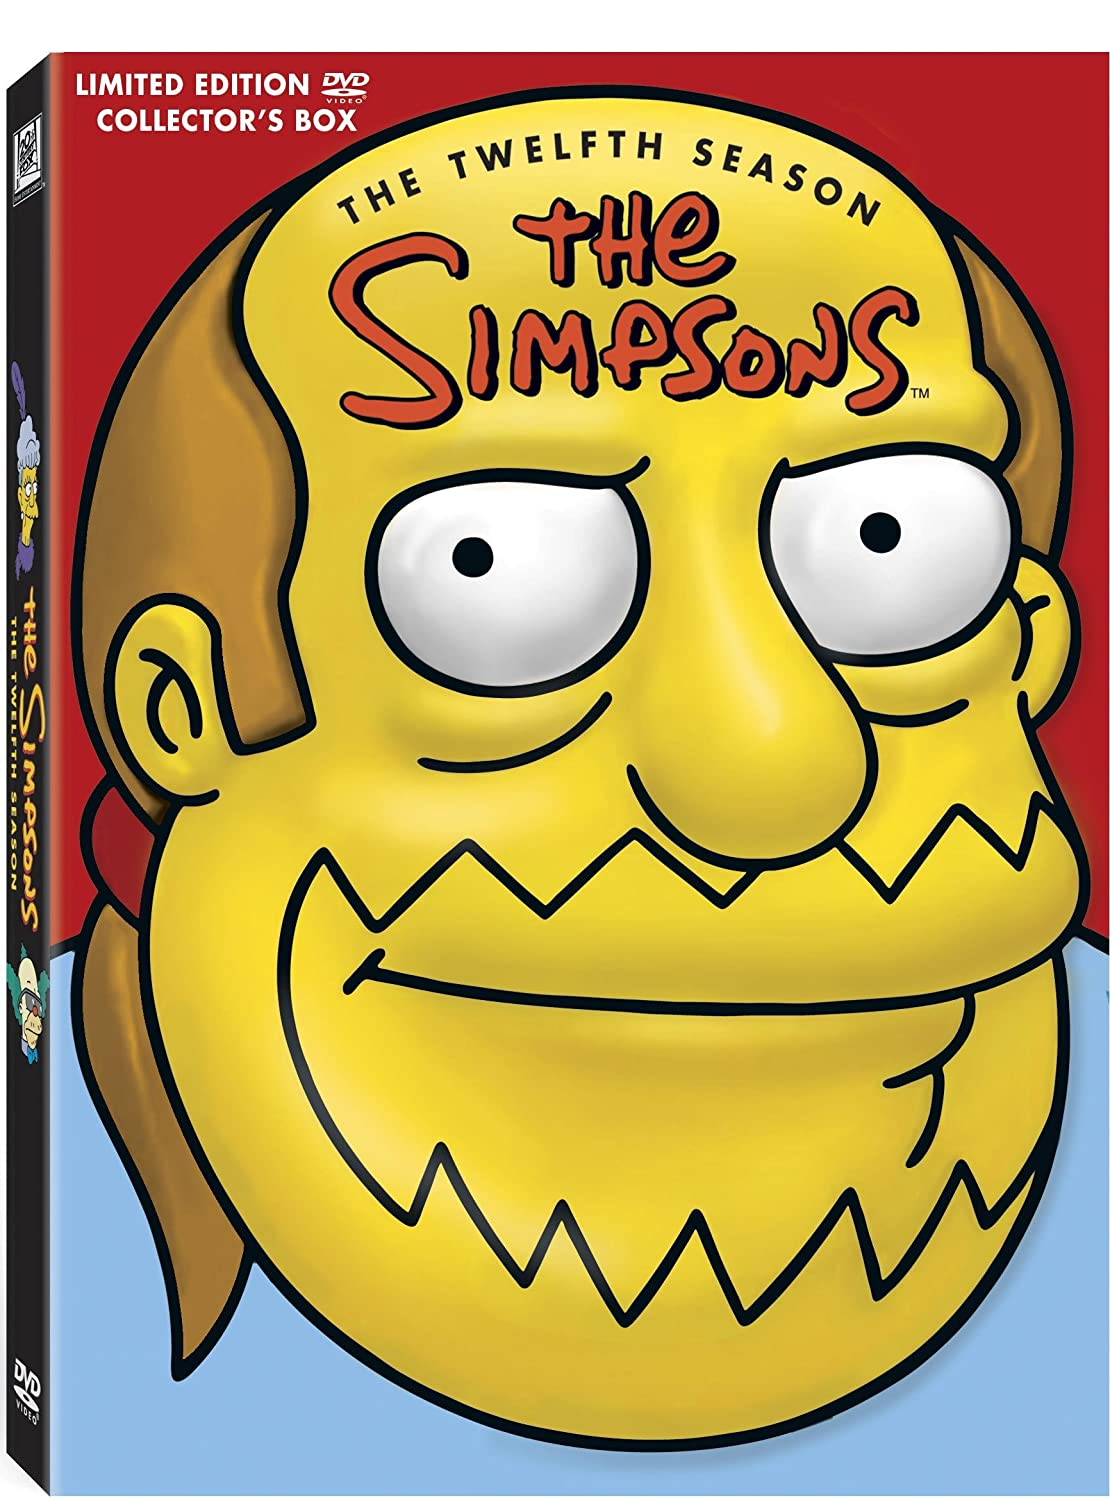 The Simpsons: Season 12 (Limited Edition